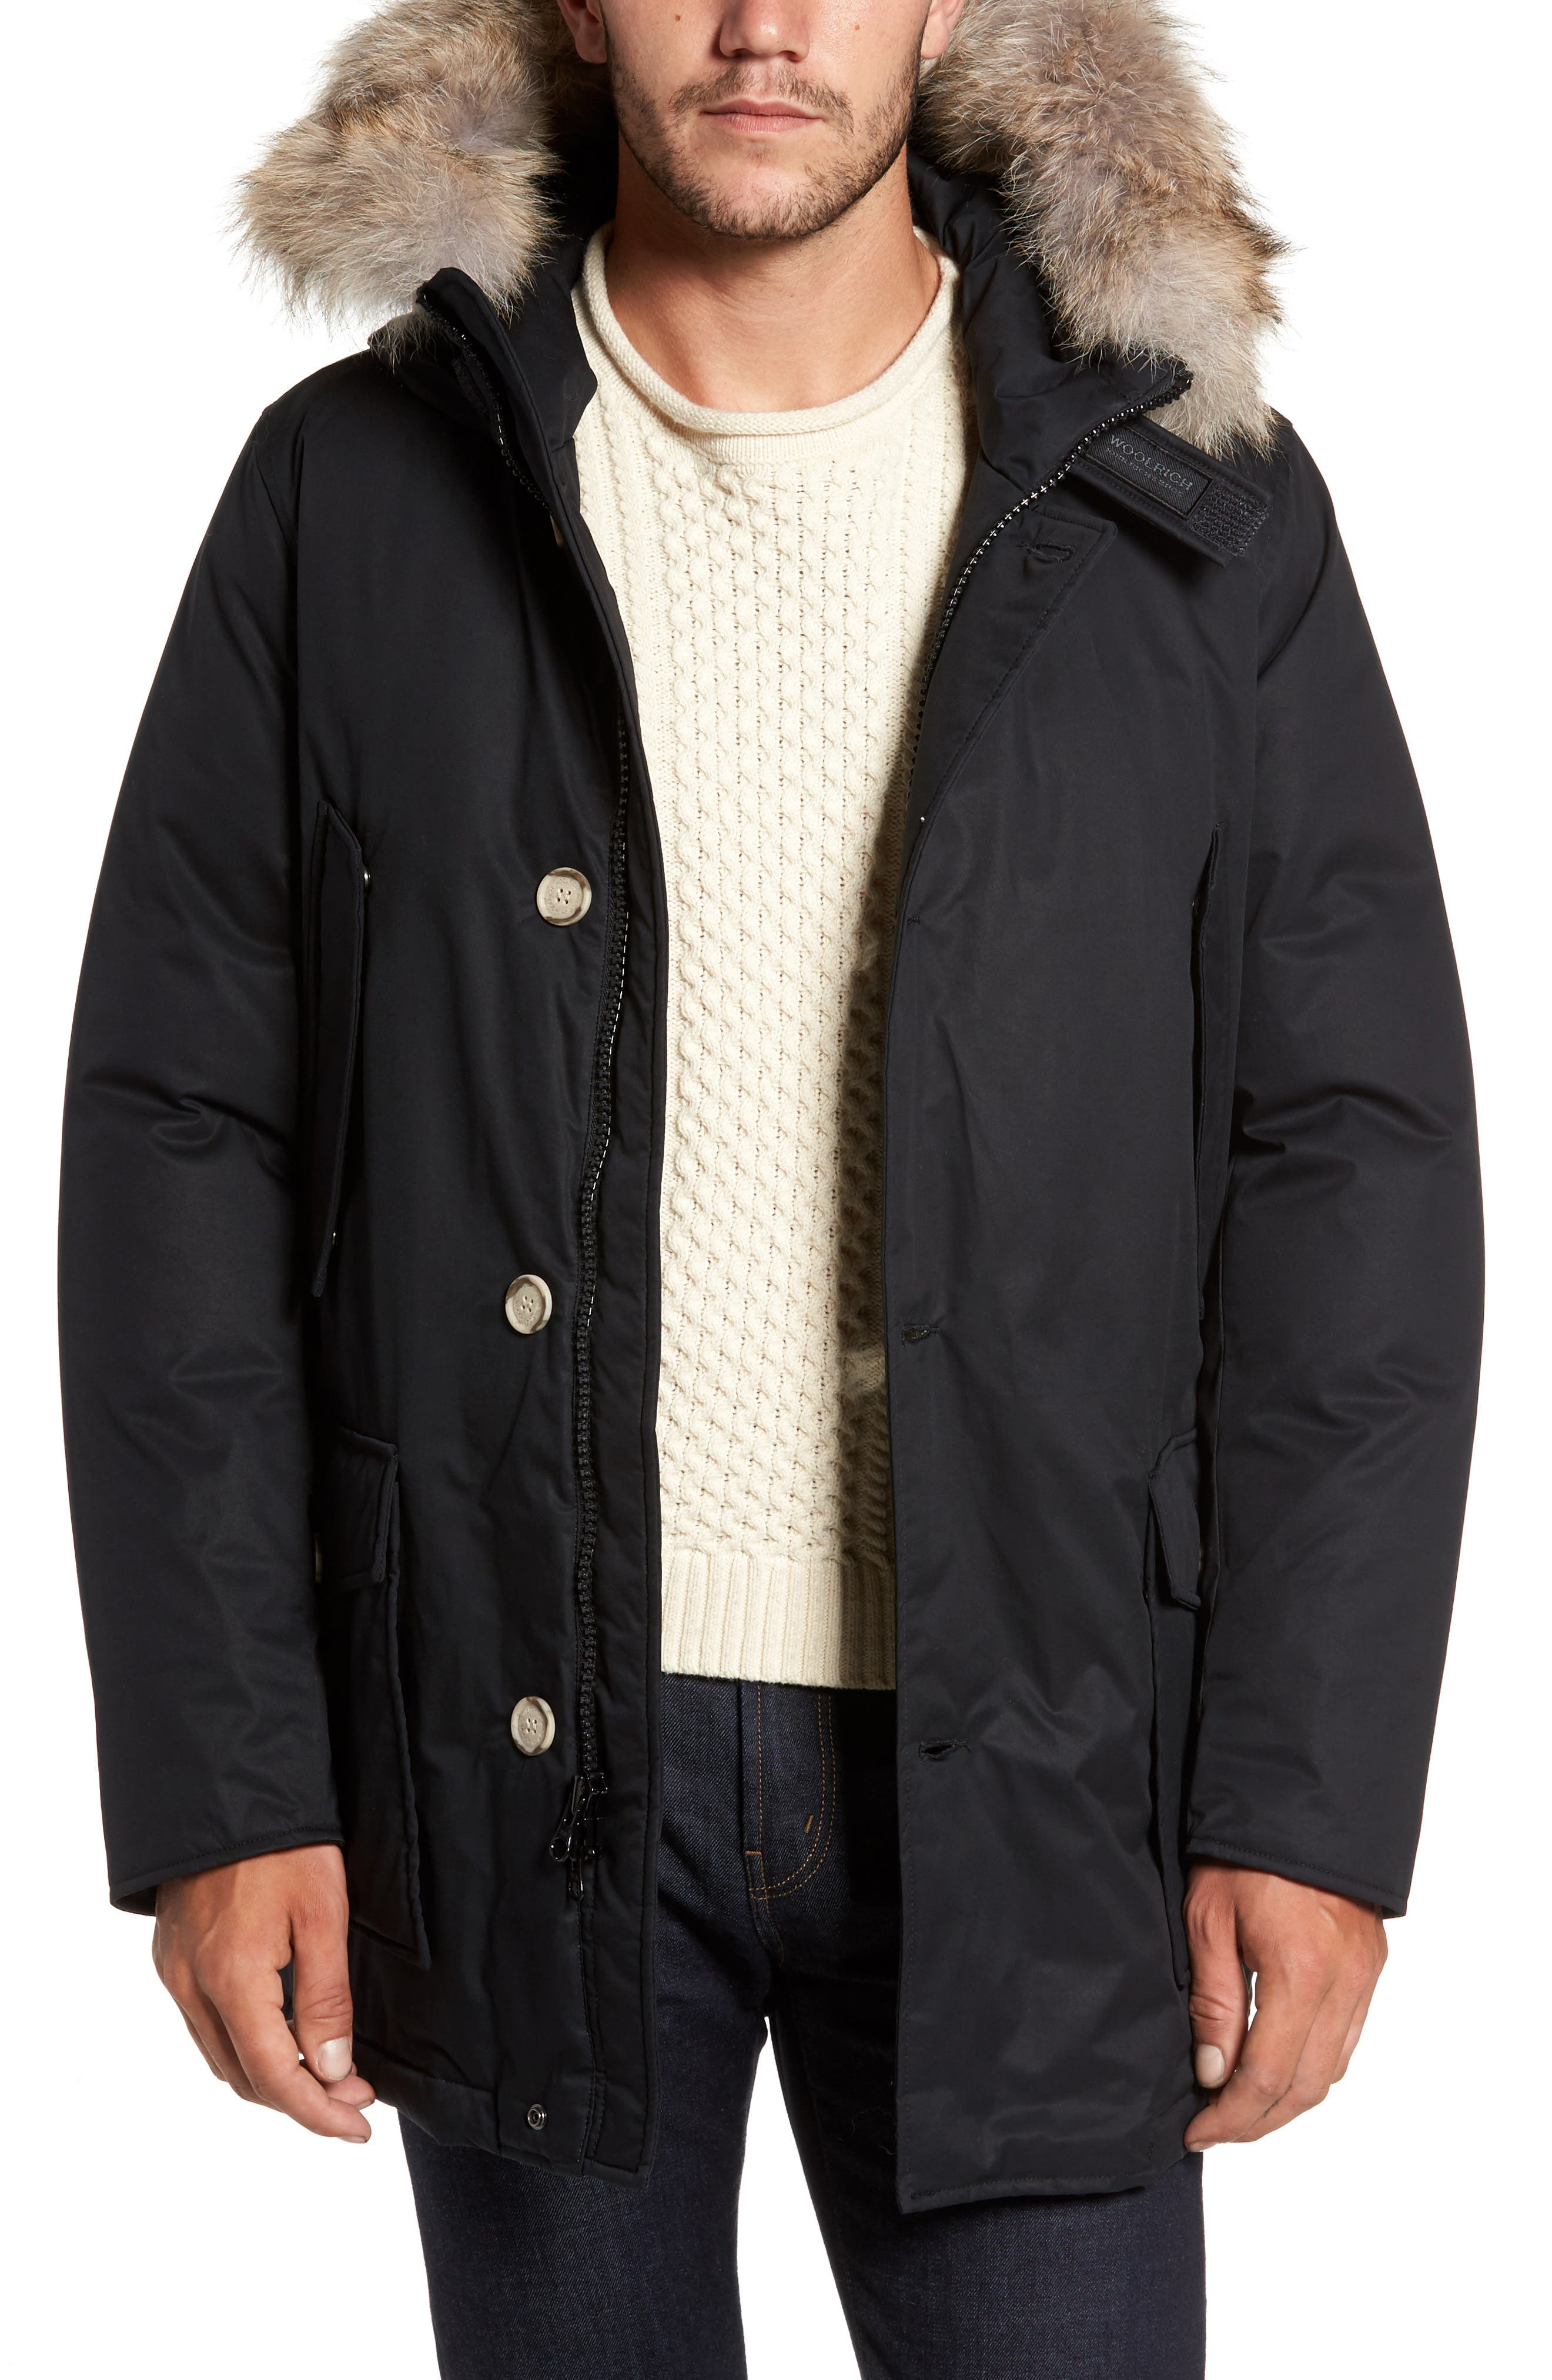 John Rich & Bros. Laminated Cotton Down Parka with Genuine Coyote Fur Trim,                         Main,                         color,